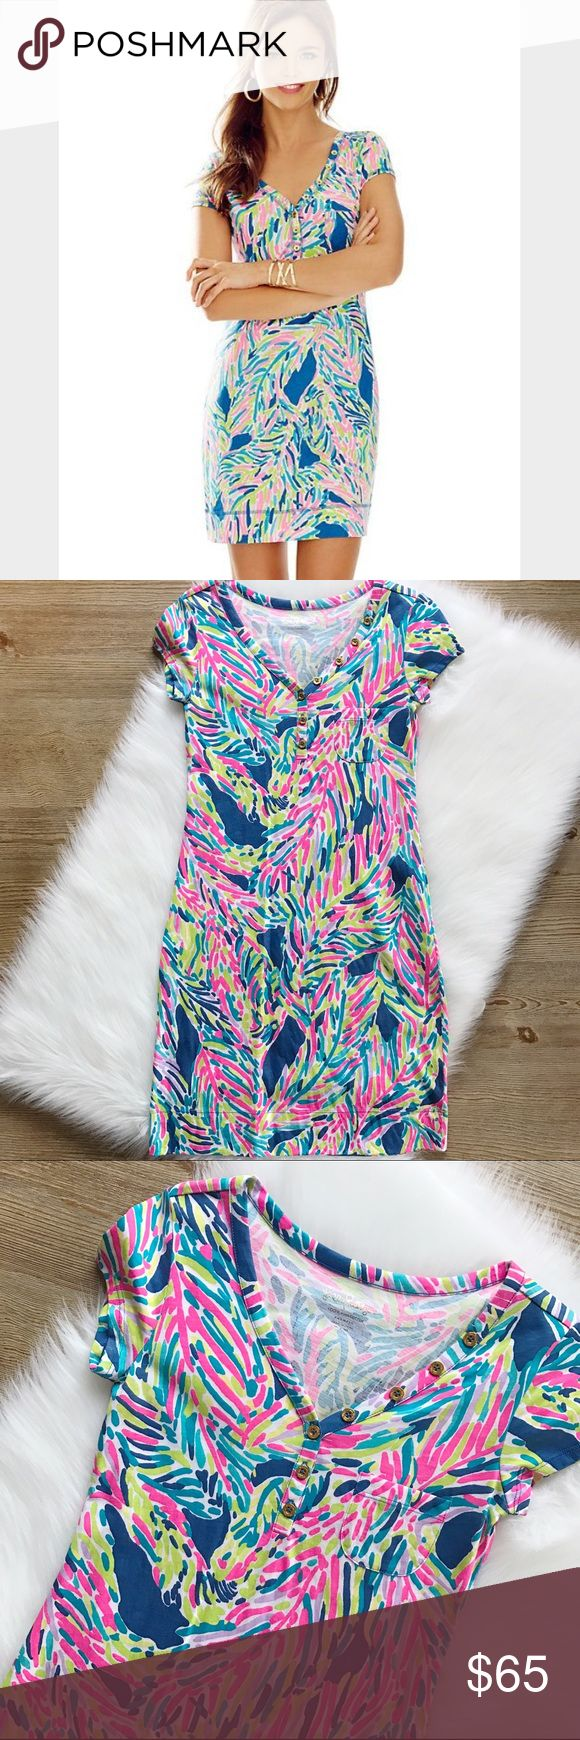 SALELilly Pulitzer Palmira V-neck Dress Absolutely gorgeous dress, size is XXS, v-neck, decorative buttons, fits tts, wore it 2 times maybe, washed and hung to dry, 100% cotton, made in Peru.           10% off bundle of 2 items or more!                             •NO TRADING                             •reasonable offers                             •smoke free Lilly Pulitzer Dresses